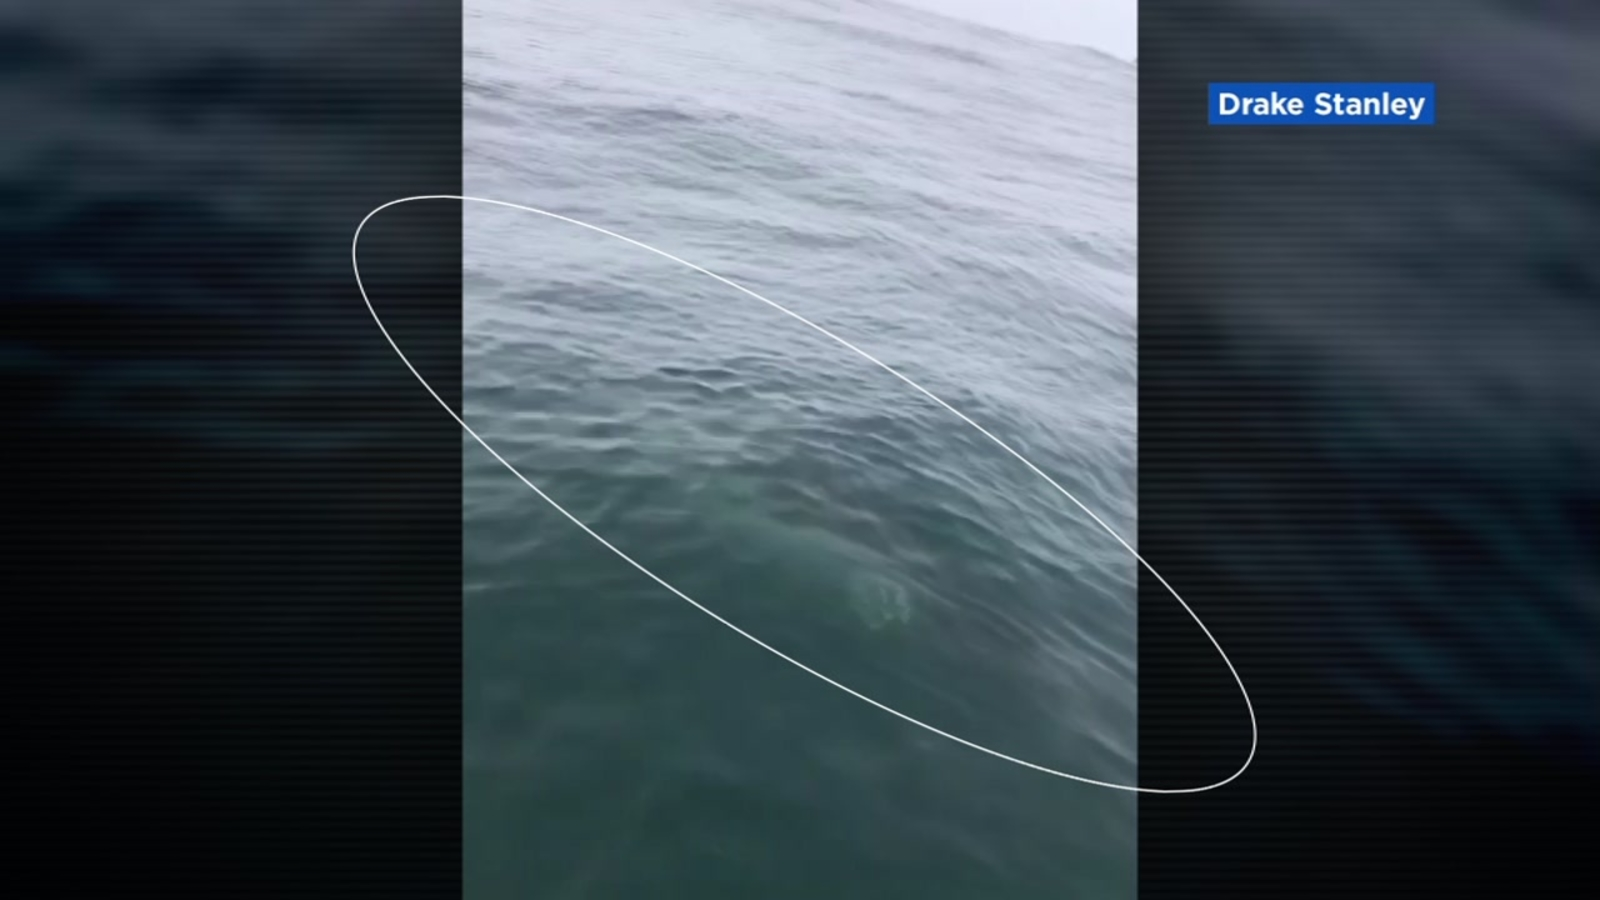 Mavericks jet ski operator rescues 8 surfers from close encounter with huge  great white shark